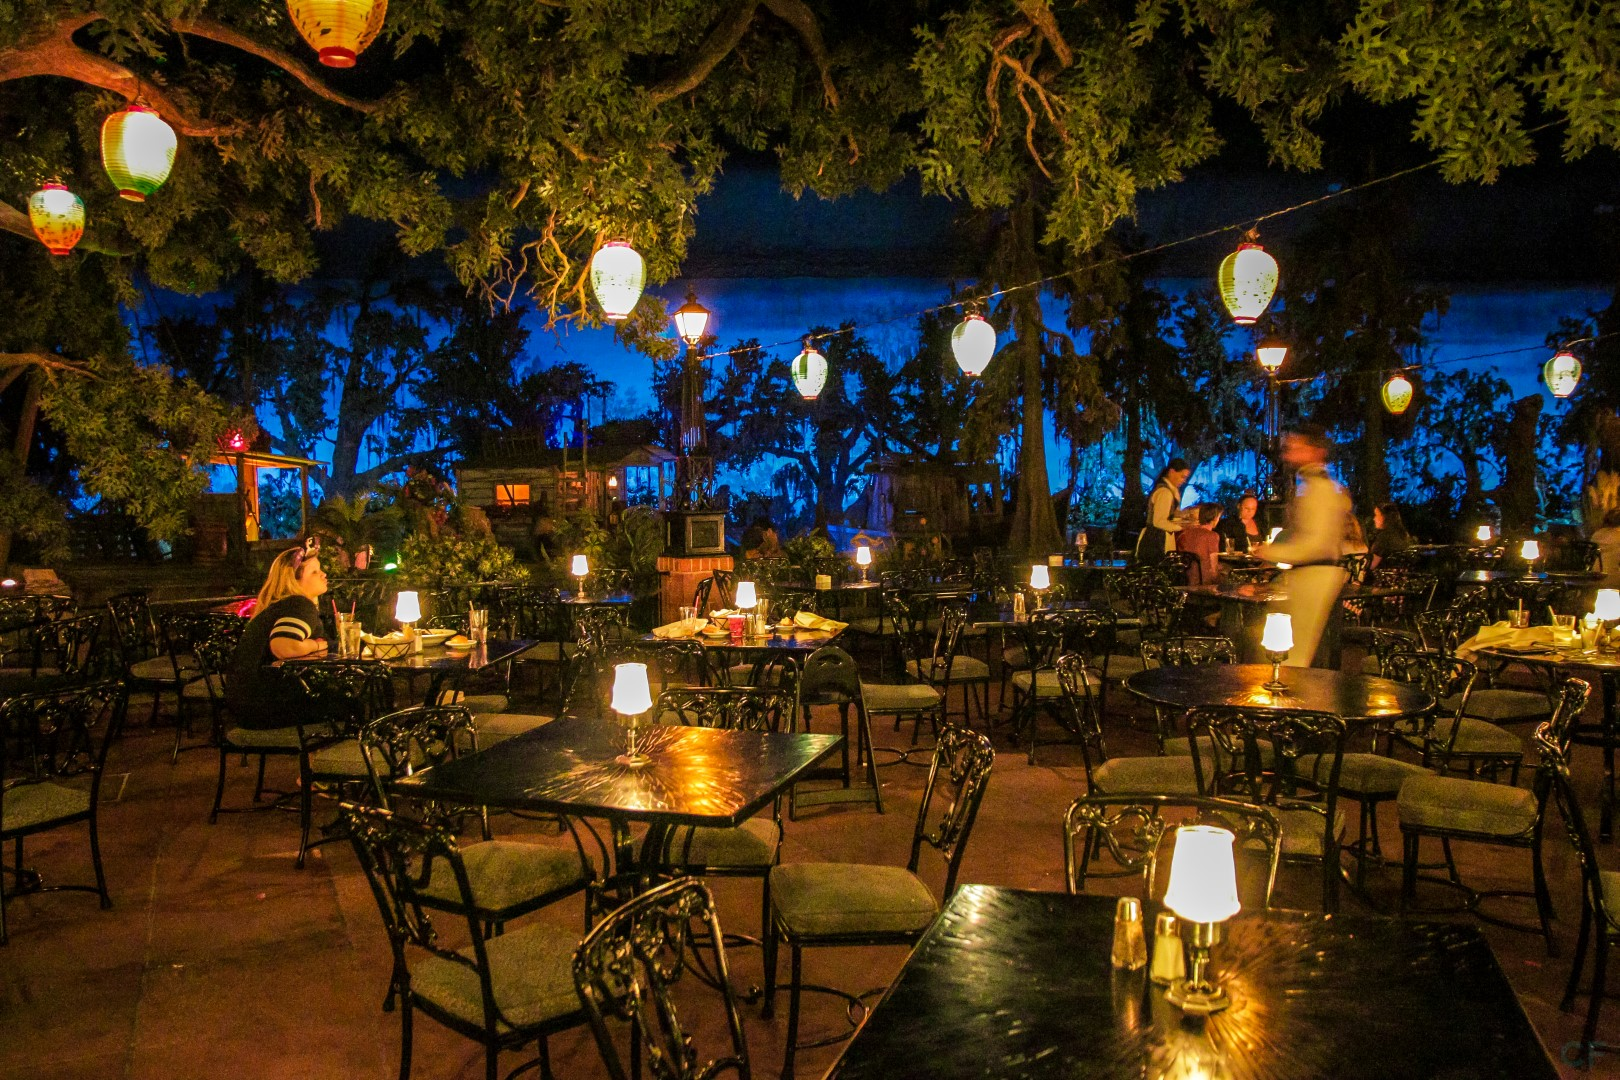 Blue Bayou at Disneyland